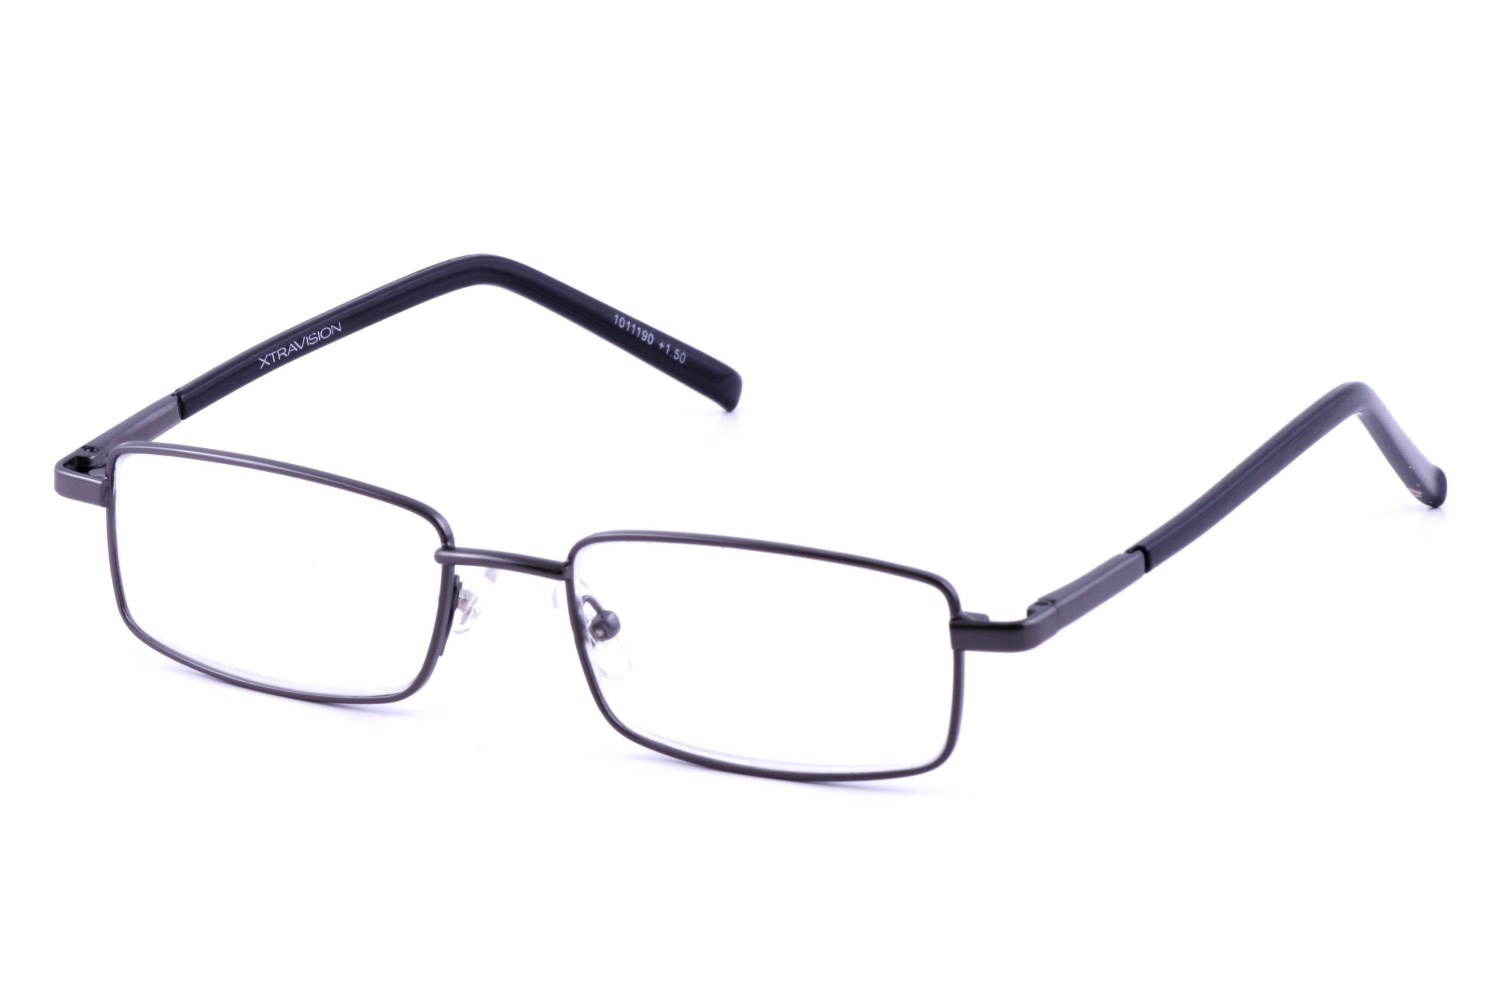 Ace Full Frame Reading Glasses with Cases (2 pack)